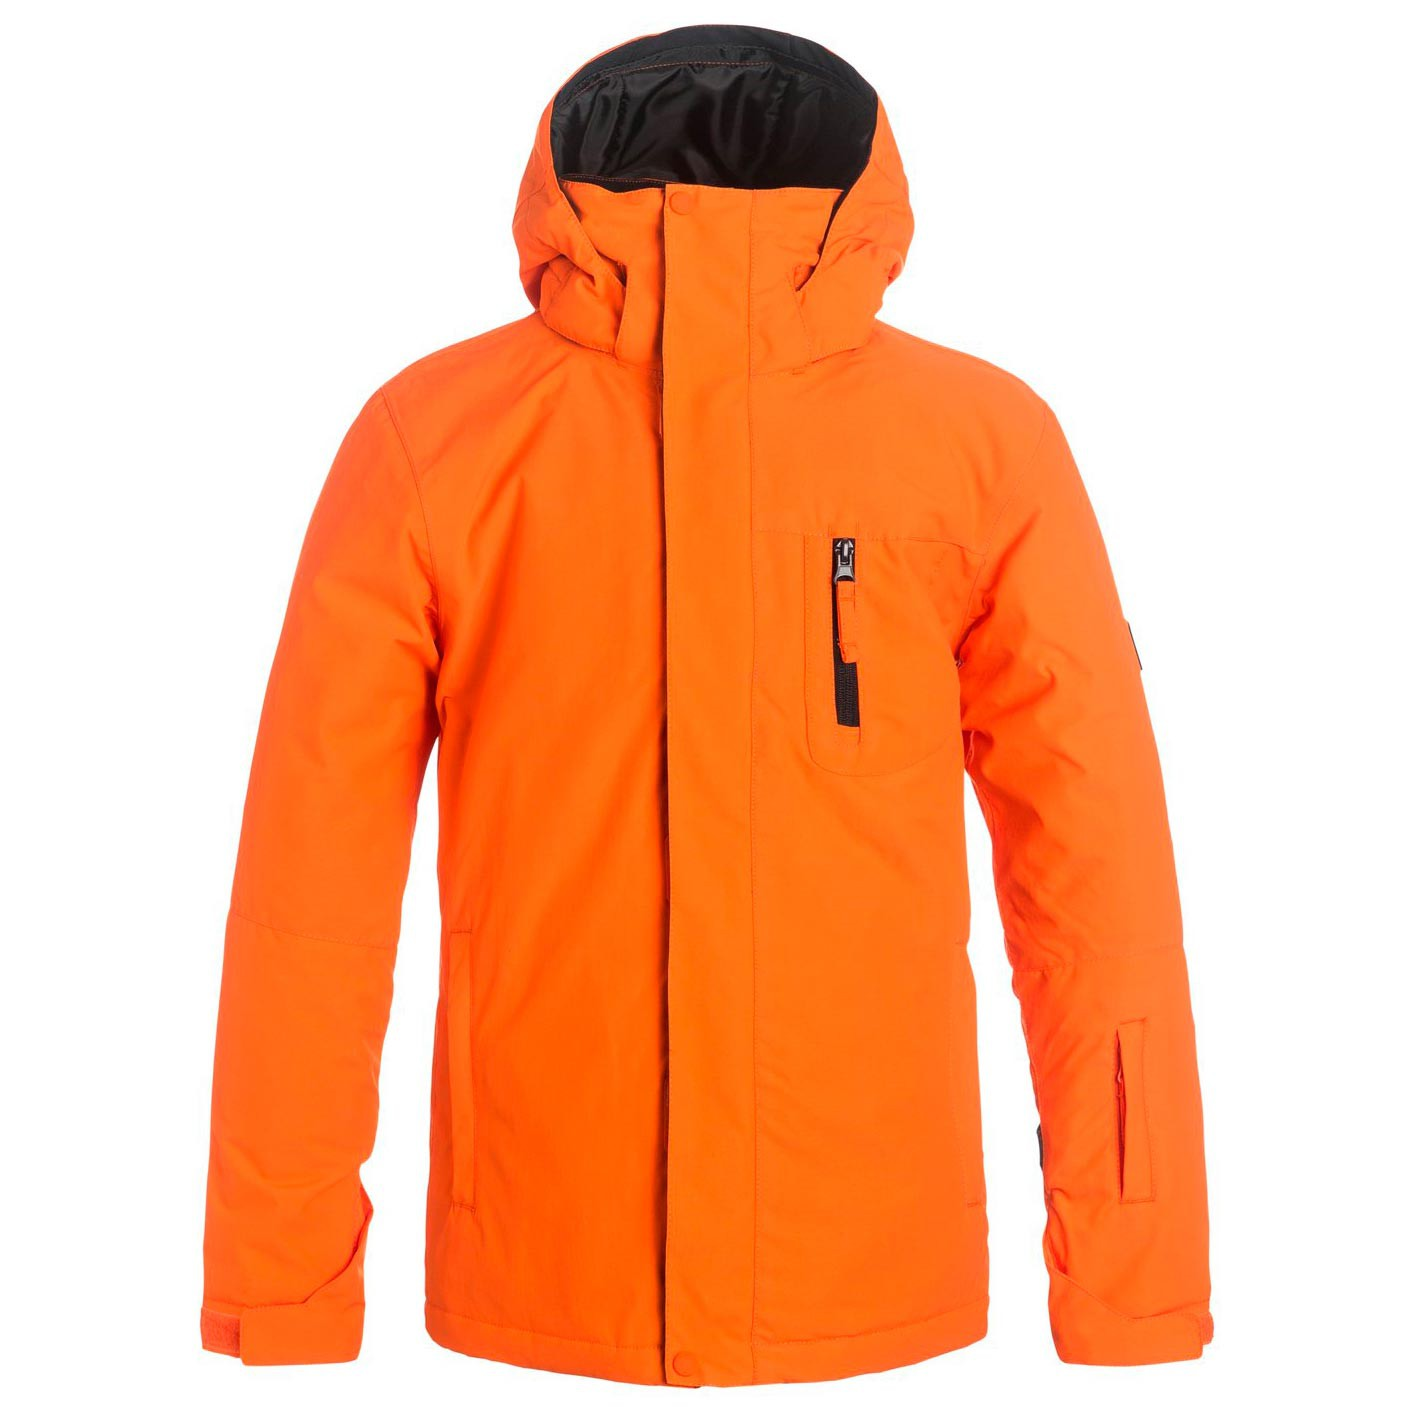 Bunda Quiksilver Mission Solid Youth flame